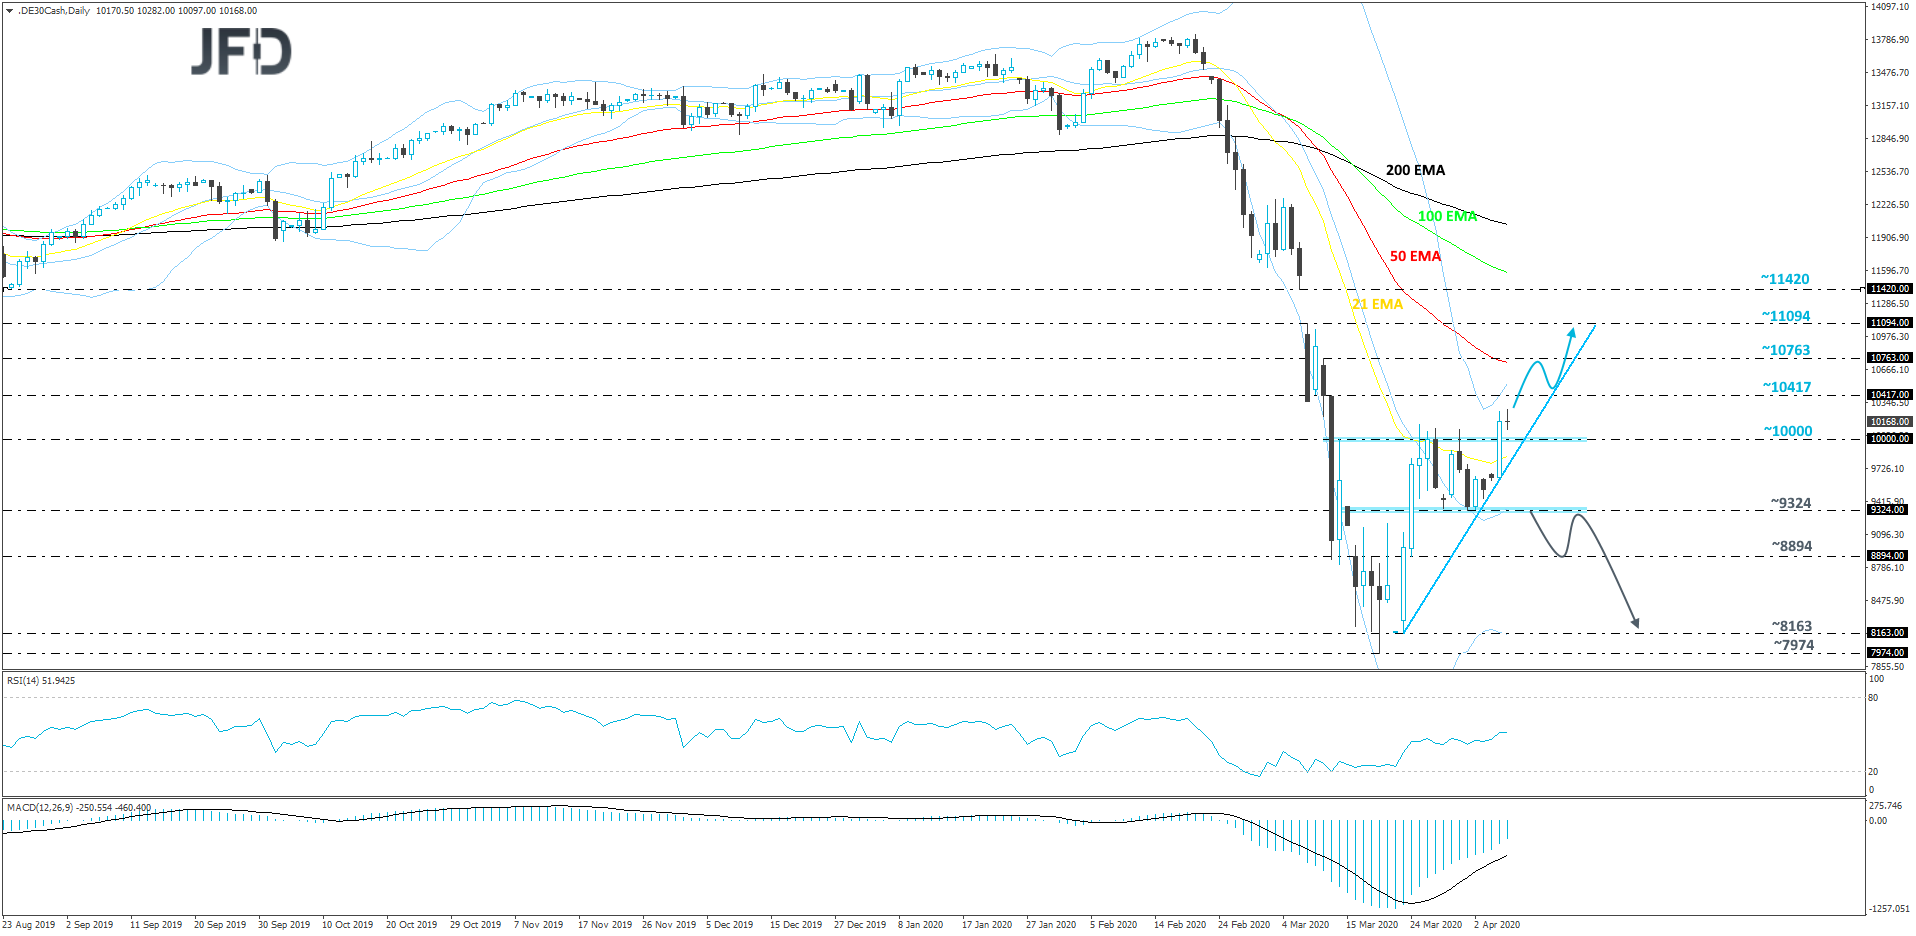 German DAX cash index daily chart technical analysis